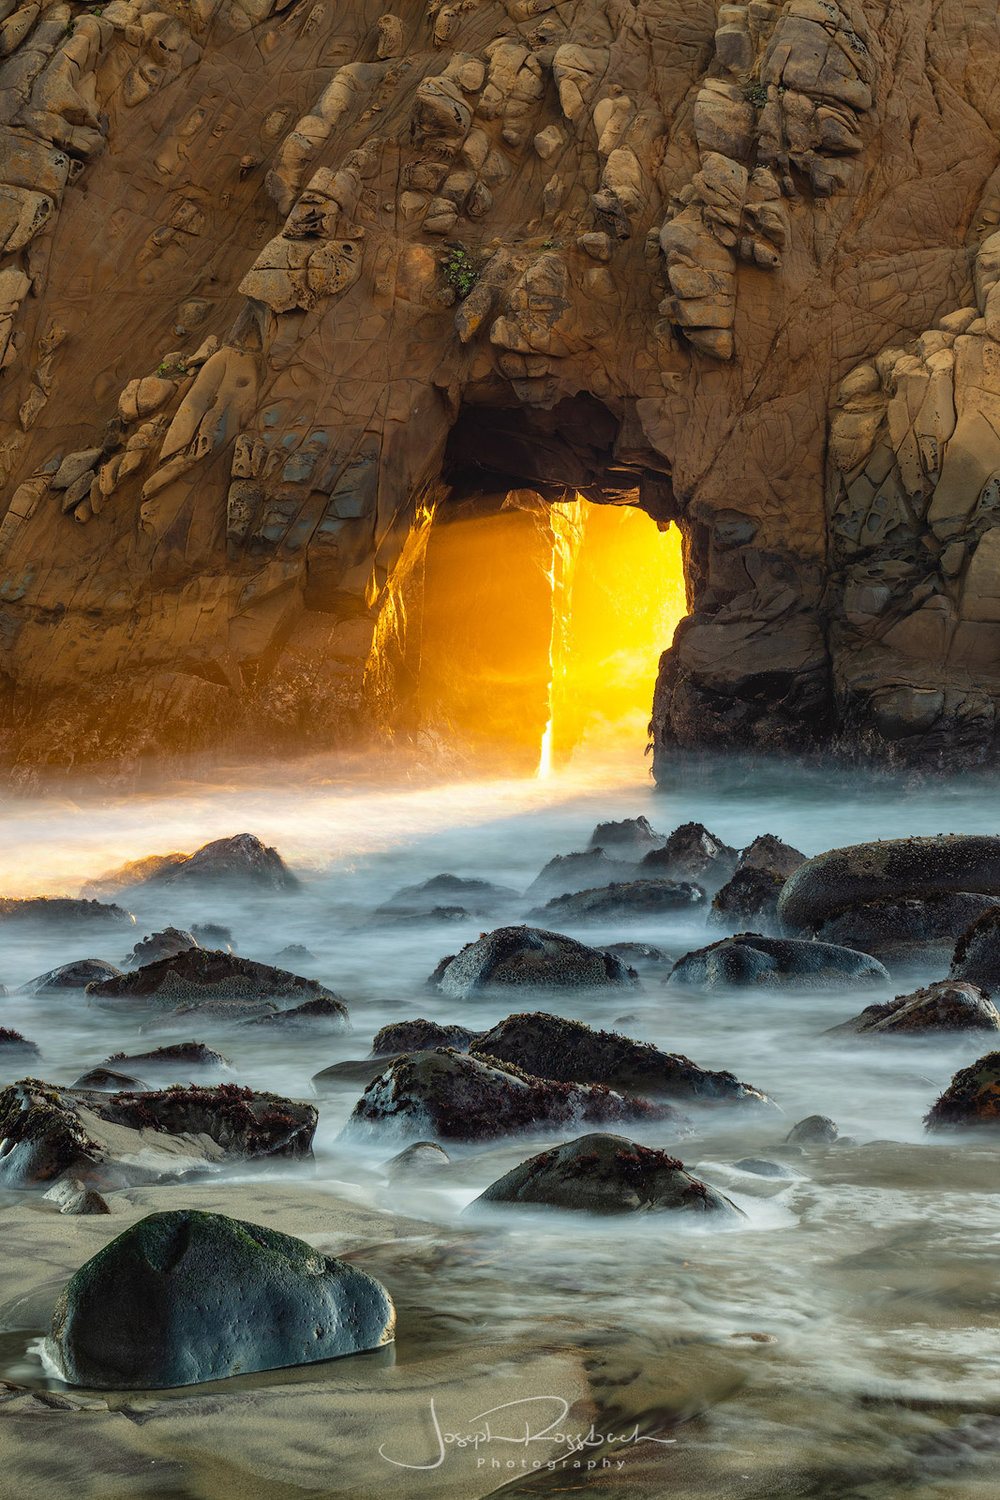 Spring in the Big Sur - Carmel by the Sea, CAMarch 24-28, 2019 | $1,295.00 $200 Deposit Due At Registration